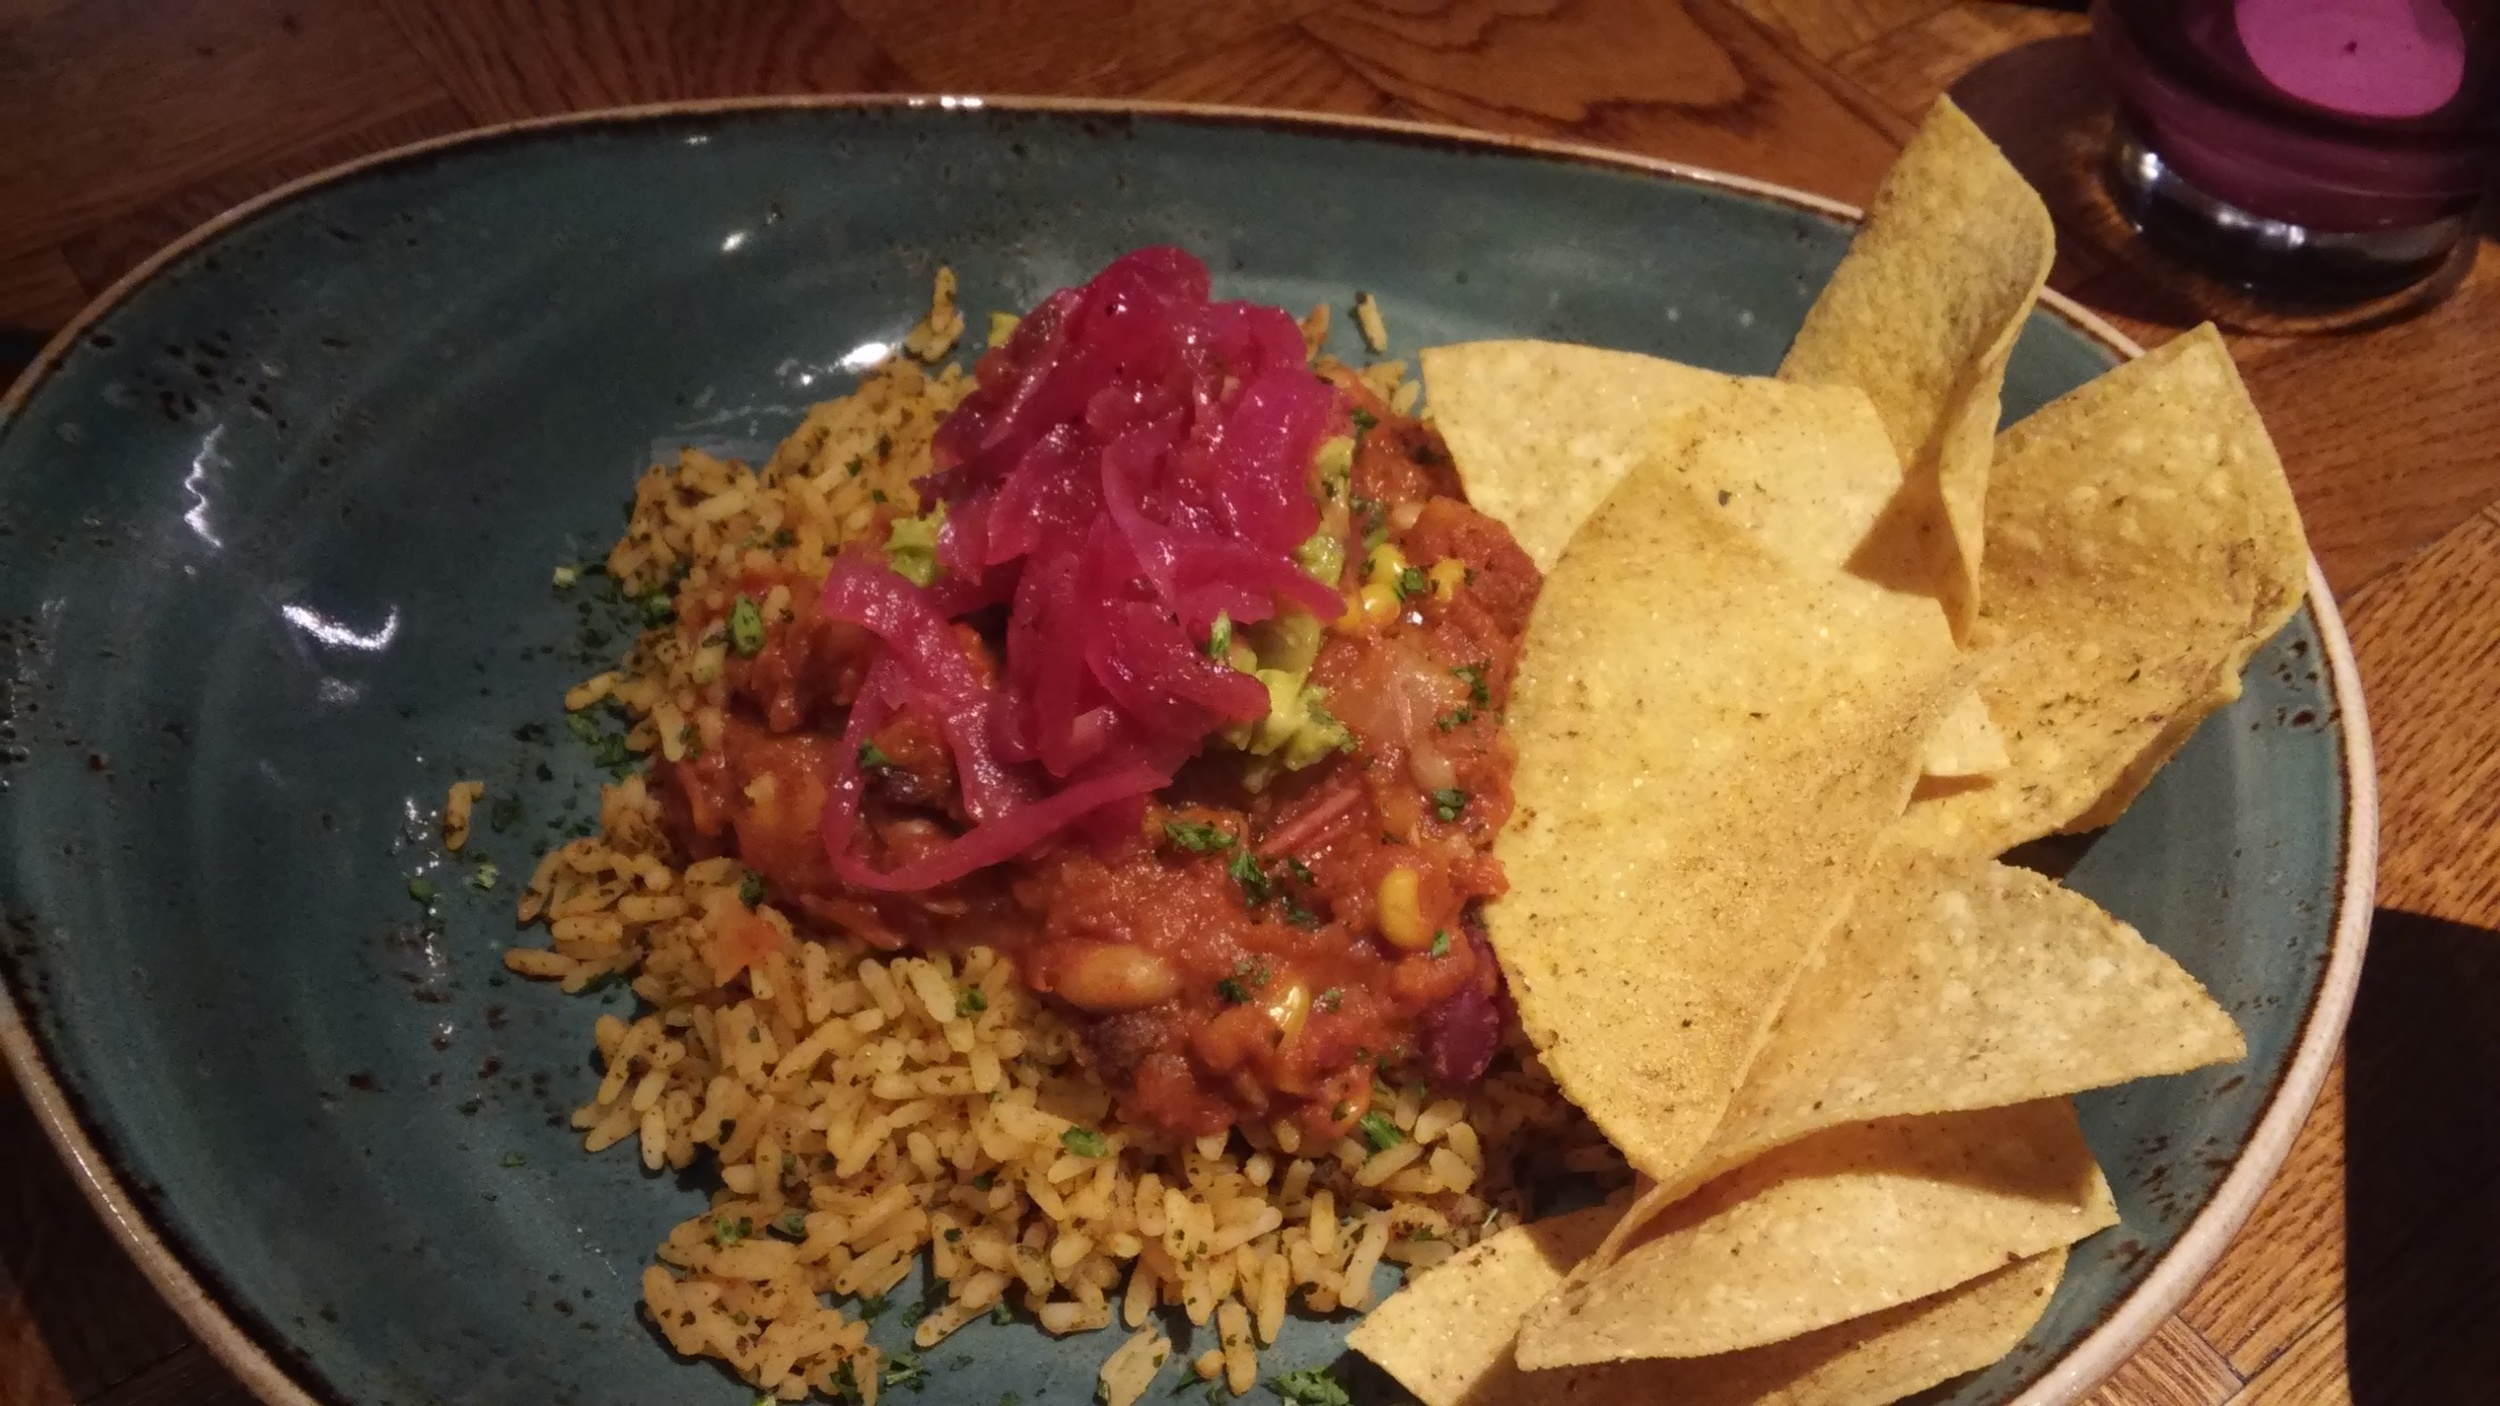 Veggie five bean chilli served with Mexican spiced rice, roasted vegetables and tortilla chips